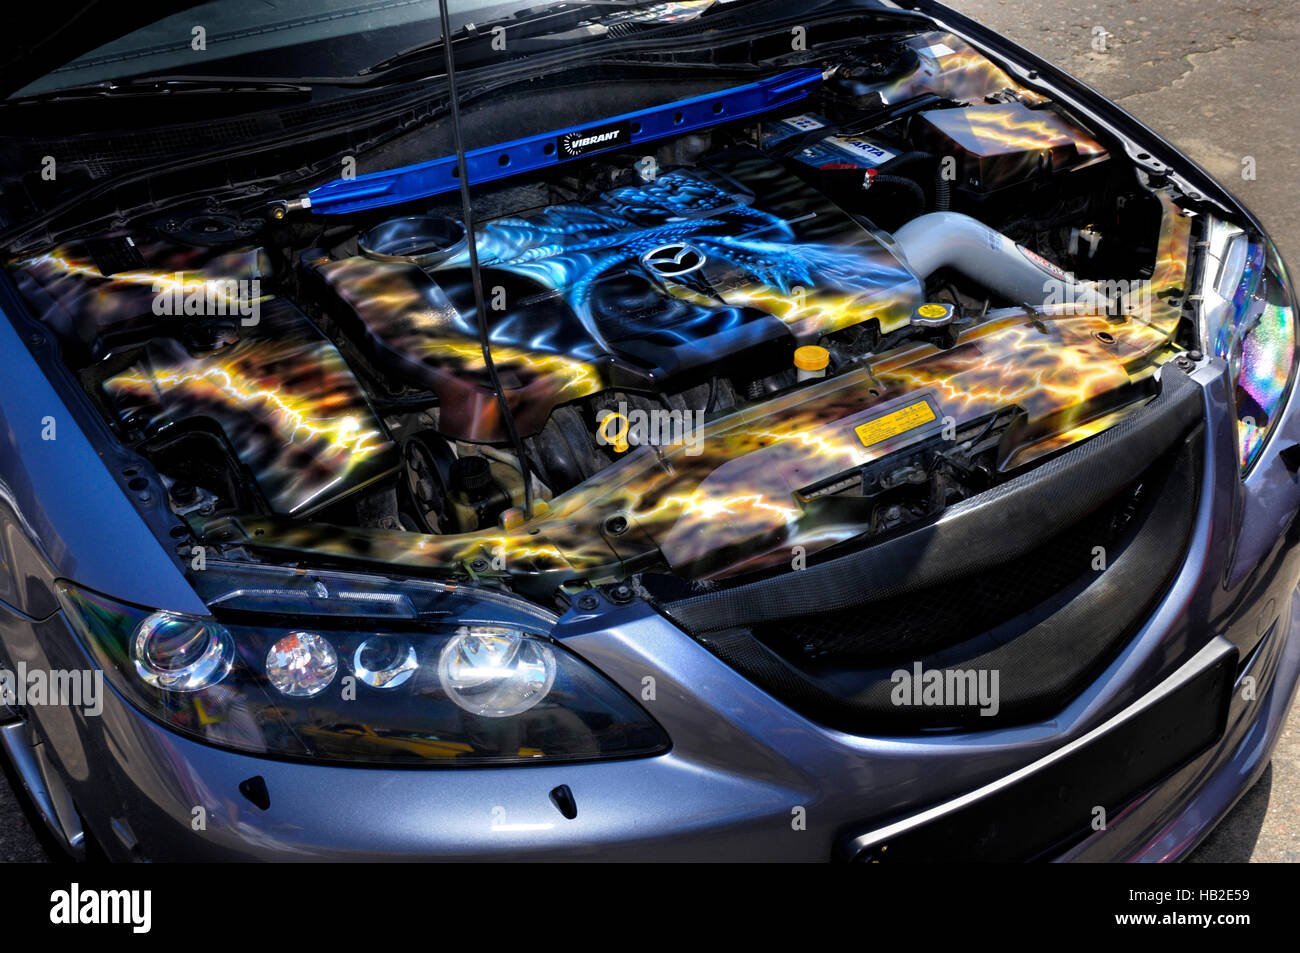 Mazda car with artistic decorative pattern painted on its engine - Stock Image